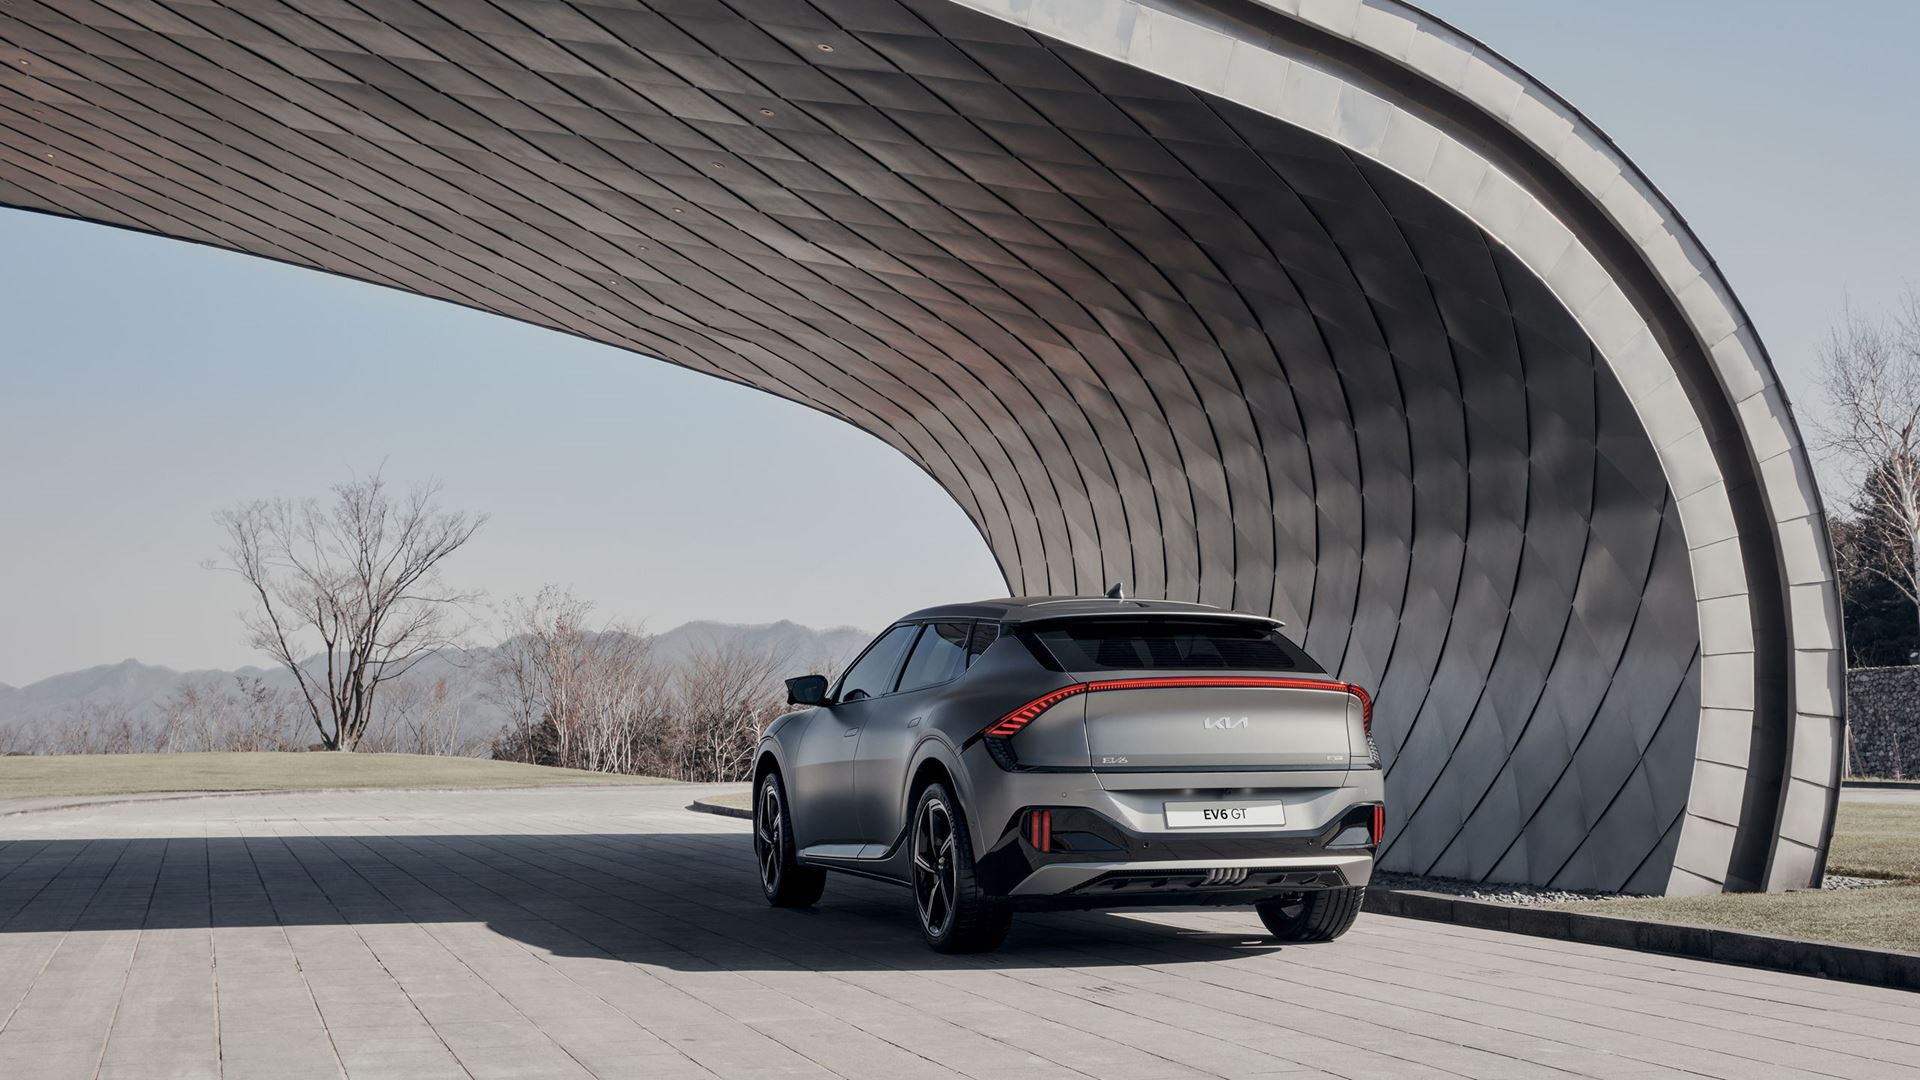 Kia EV6 redefines boundaries of electric mobility with inspiring design, exhilarating performance and innovative space - Image 7